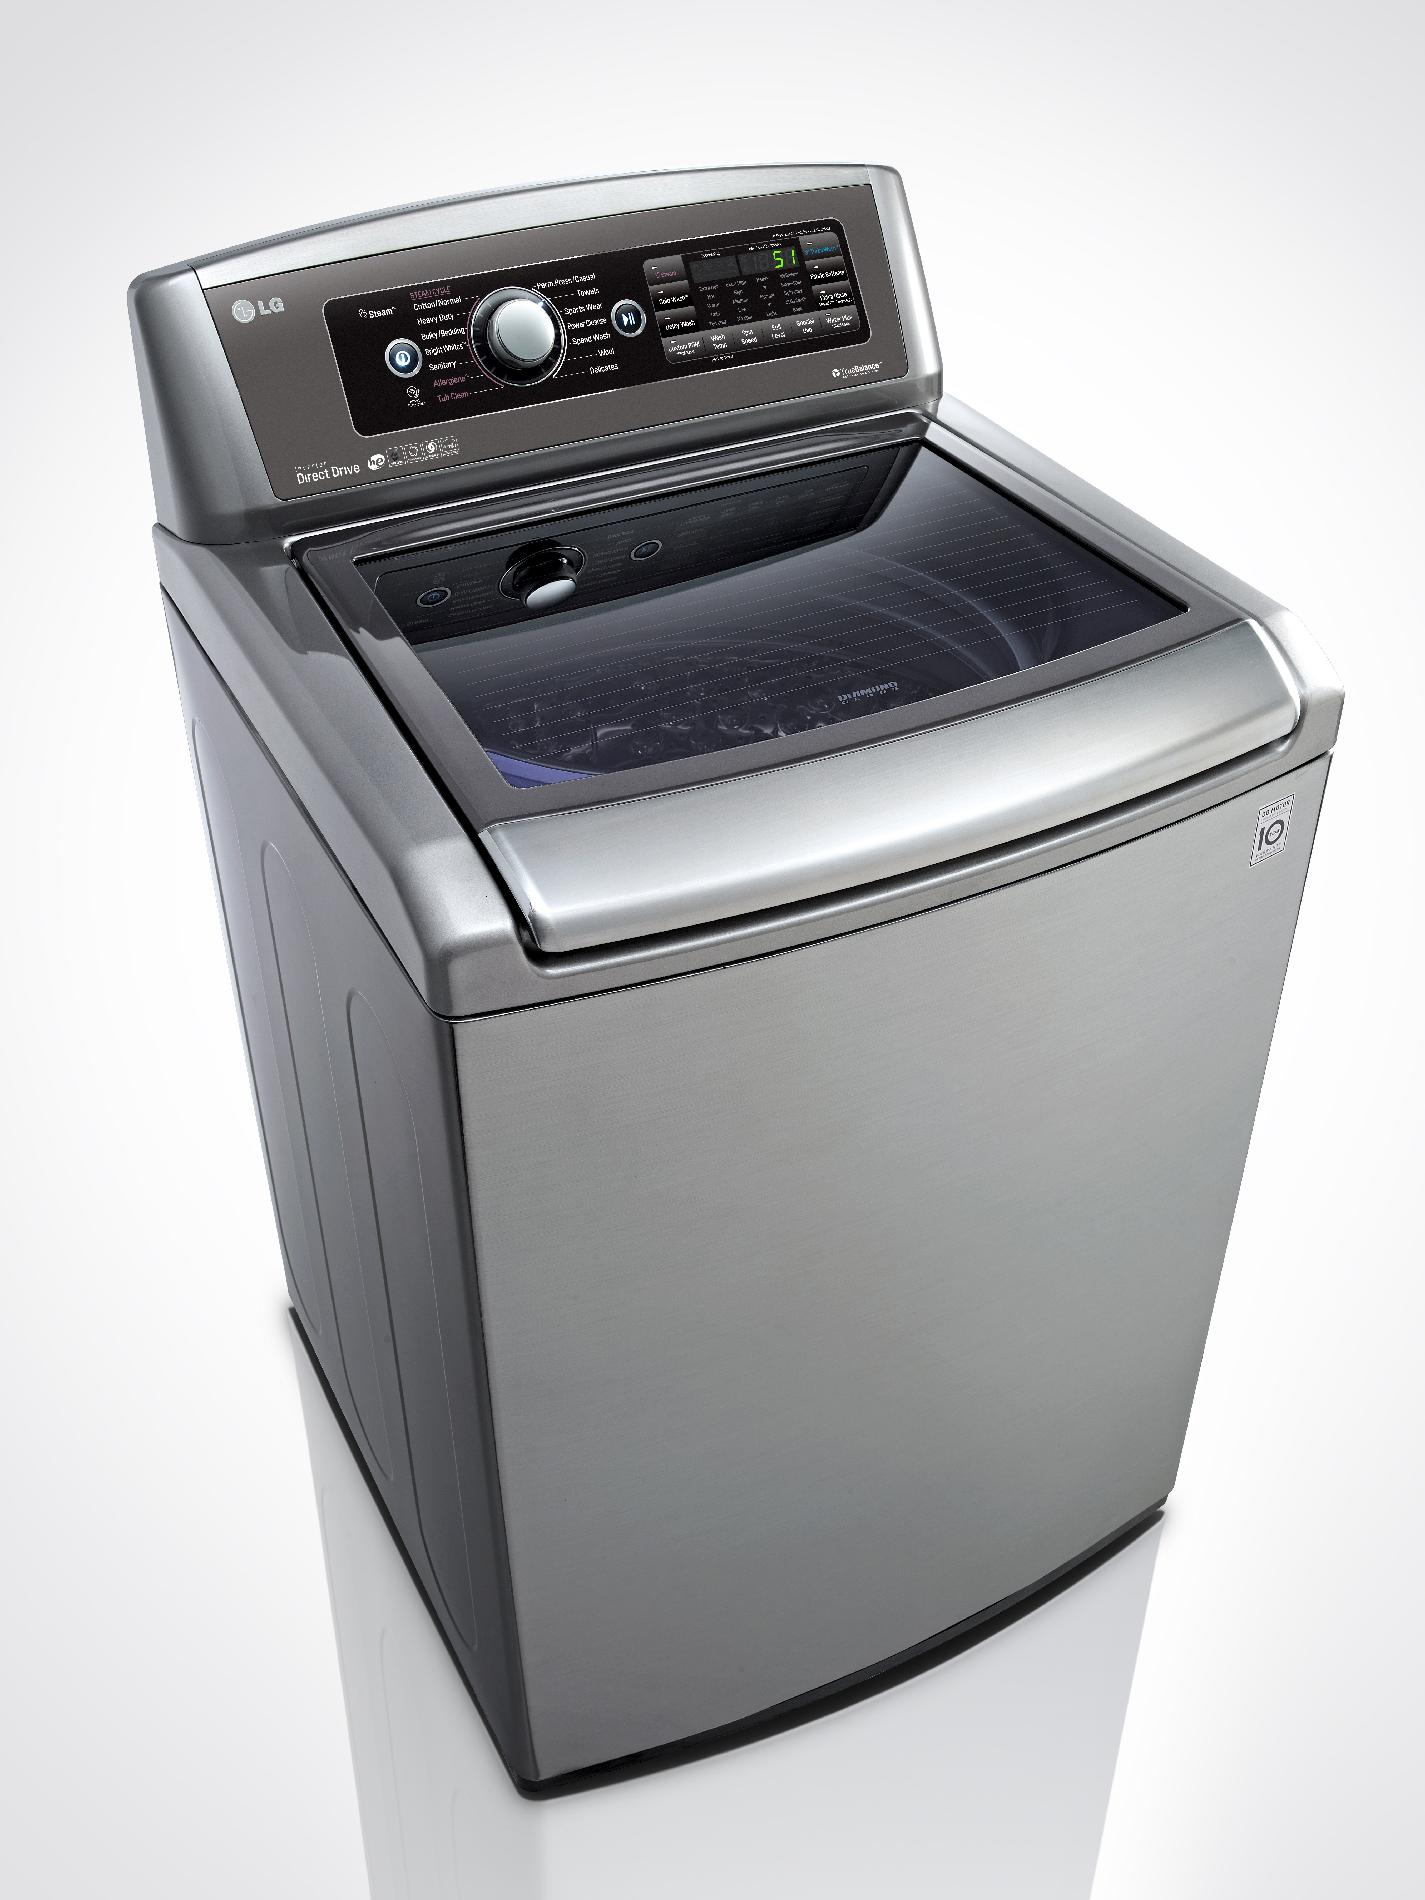 LG 5.2 cu. ft. High Efficiency Top-Load Washer w/ TurboWash™ - Graphite Steel